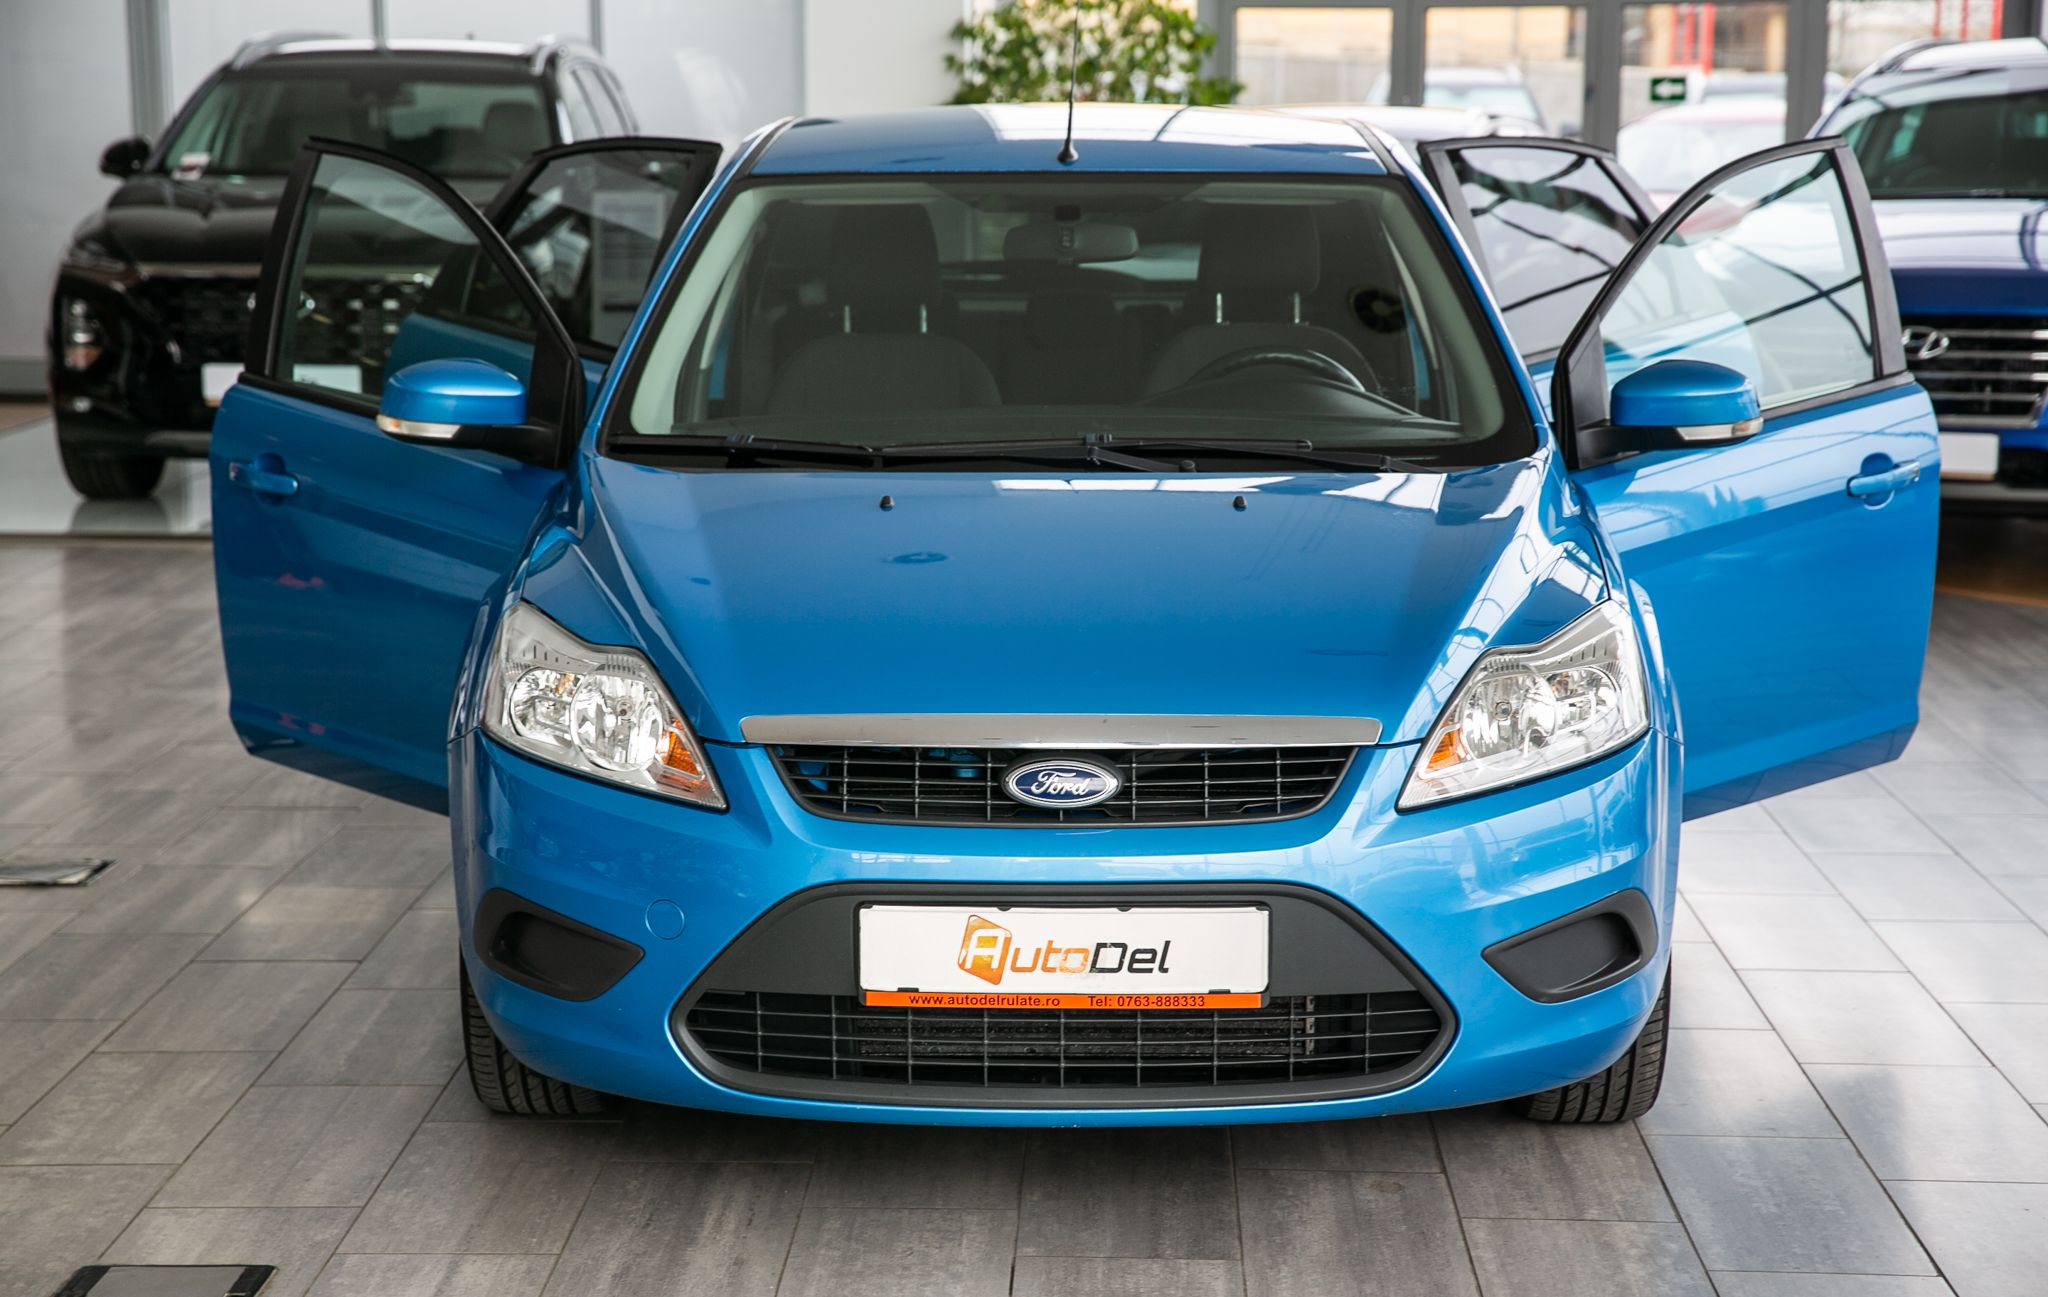 Ford Focus 2008 Second Hand